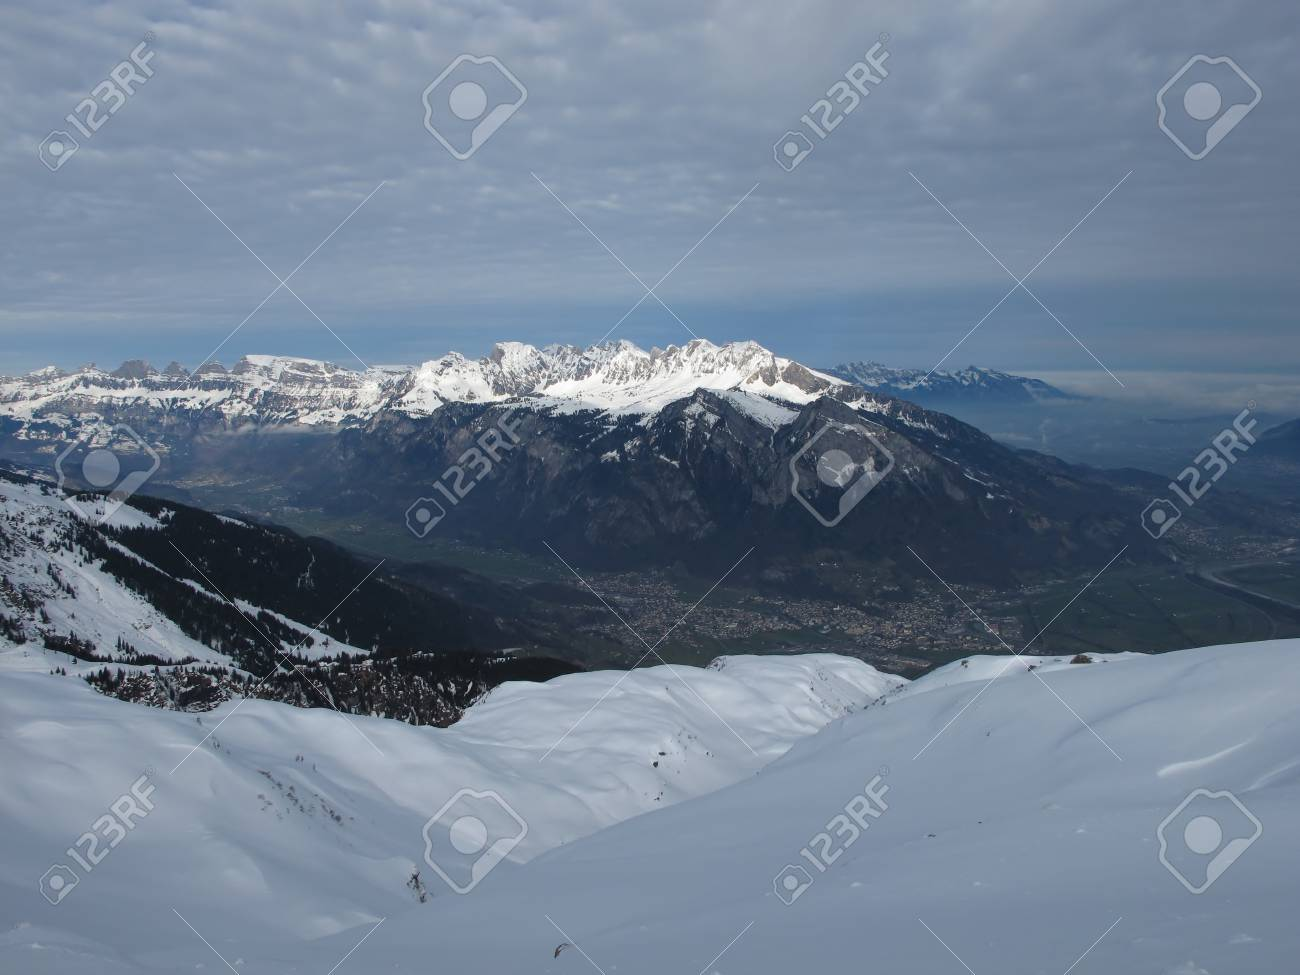 Sargans And Snow Capped Mountains Stock Photo - 17222307